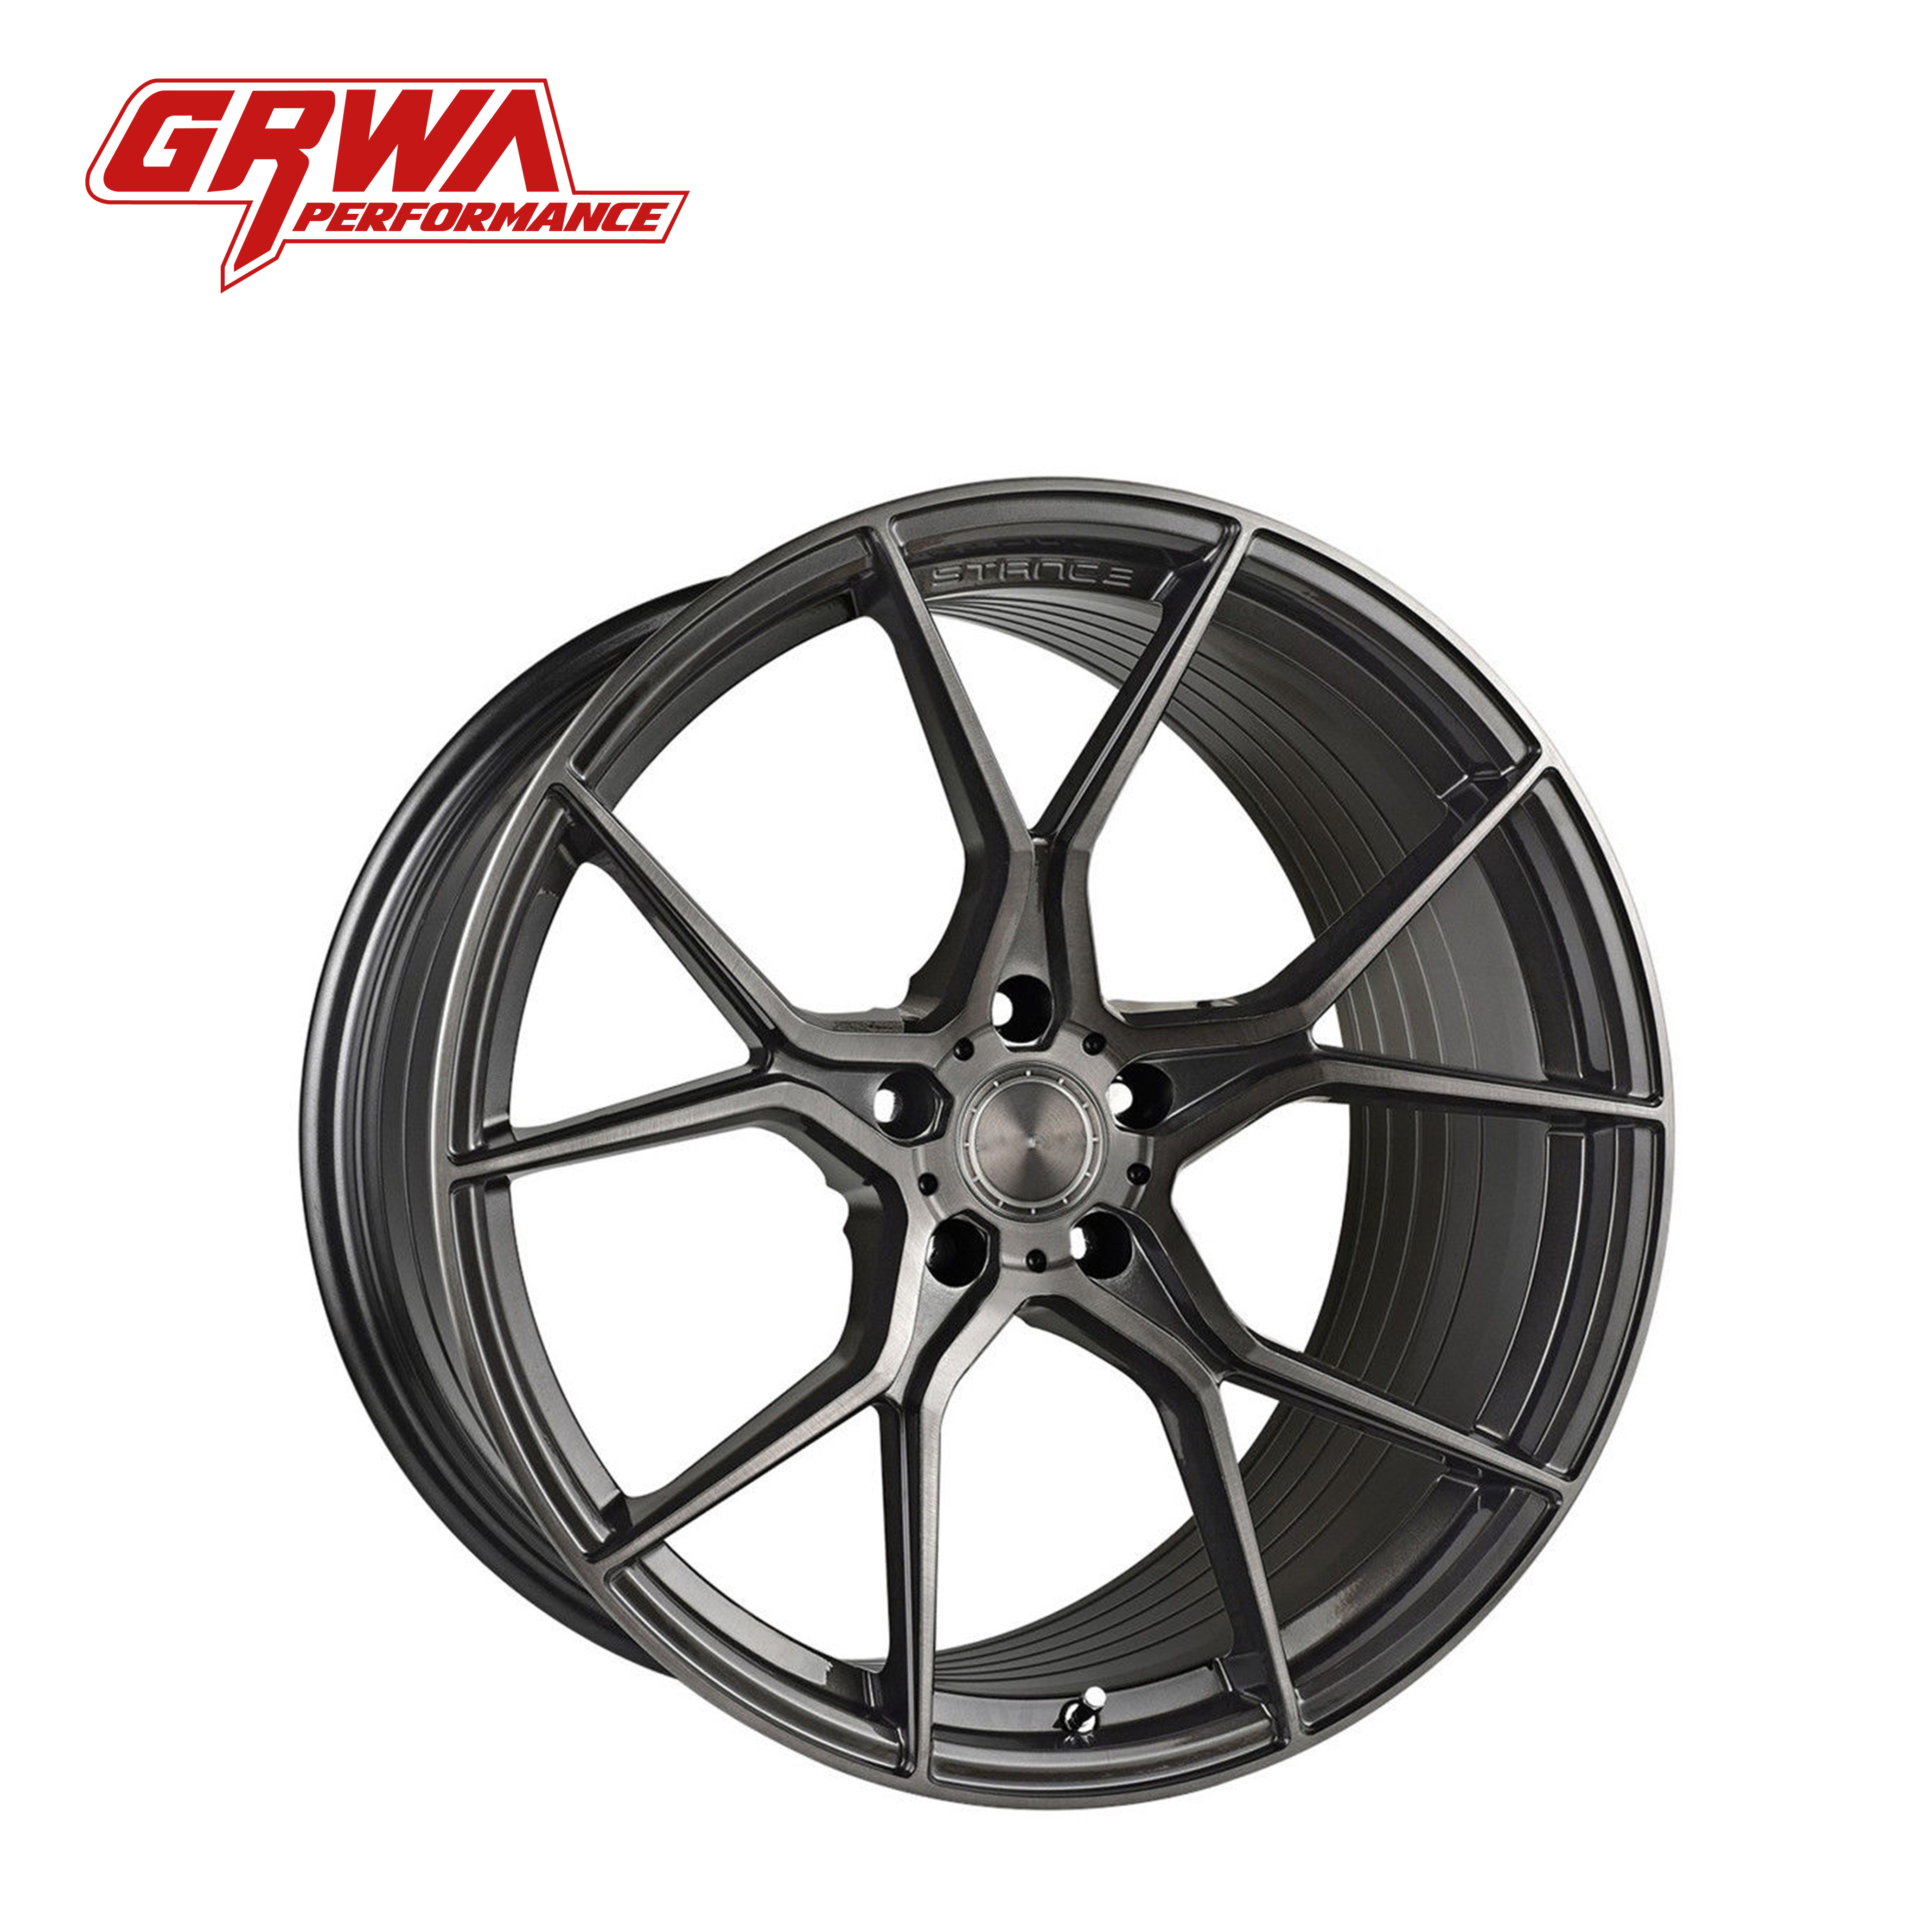 China GRWA High Quality Automotive Parts Customized Aluminum Alloy <strong>Wheels</strong>